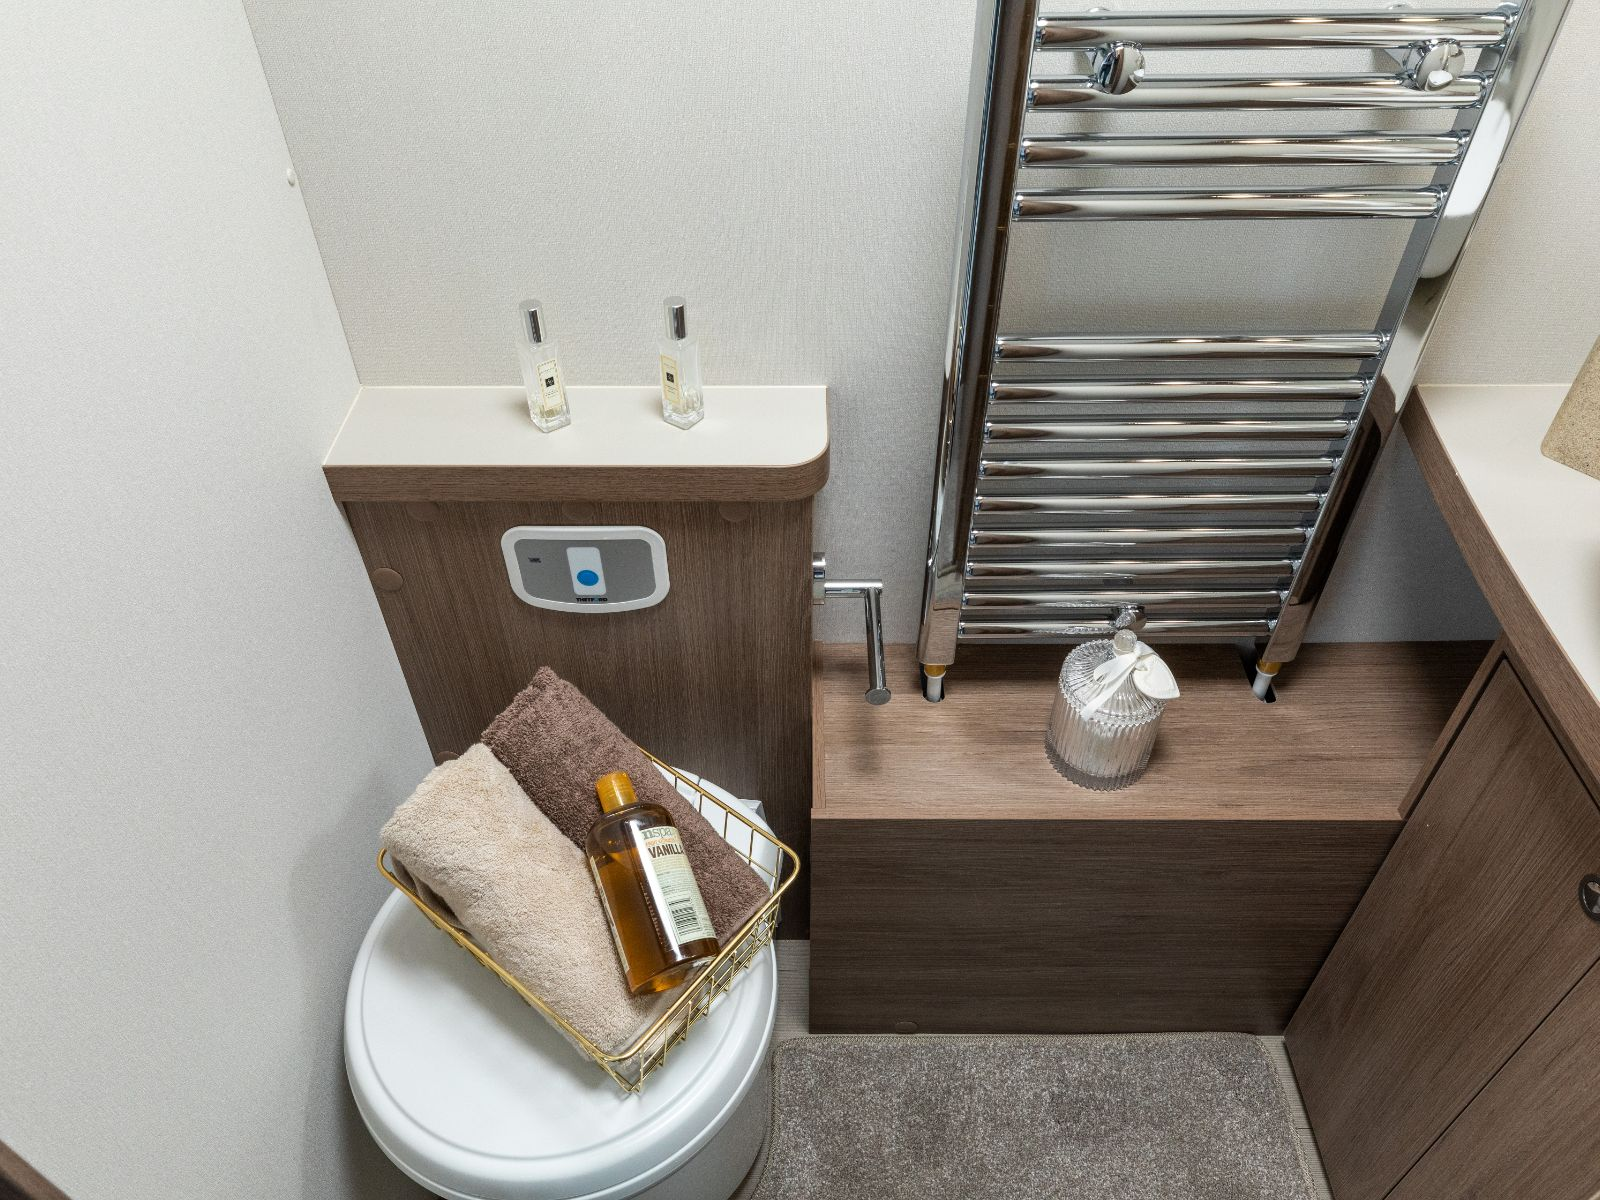 Heated towel rack and toilet with assortment of toiletries on top'